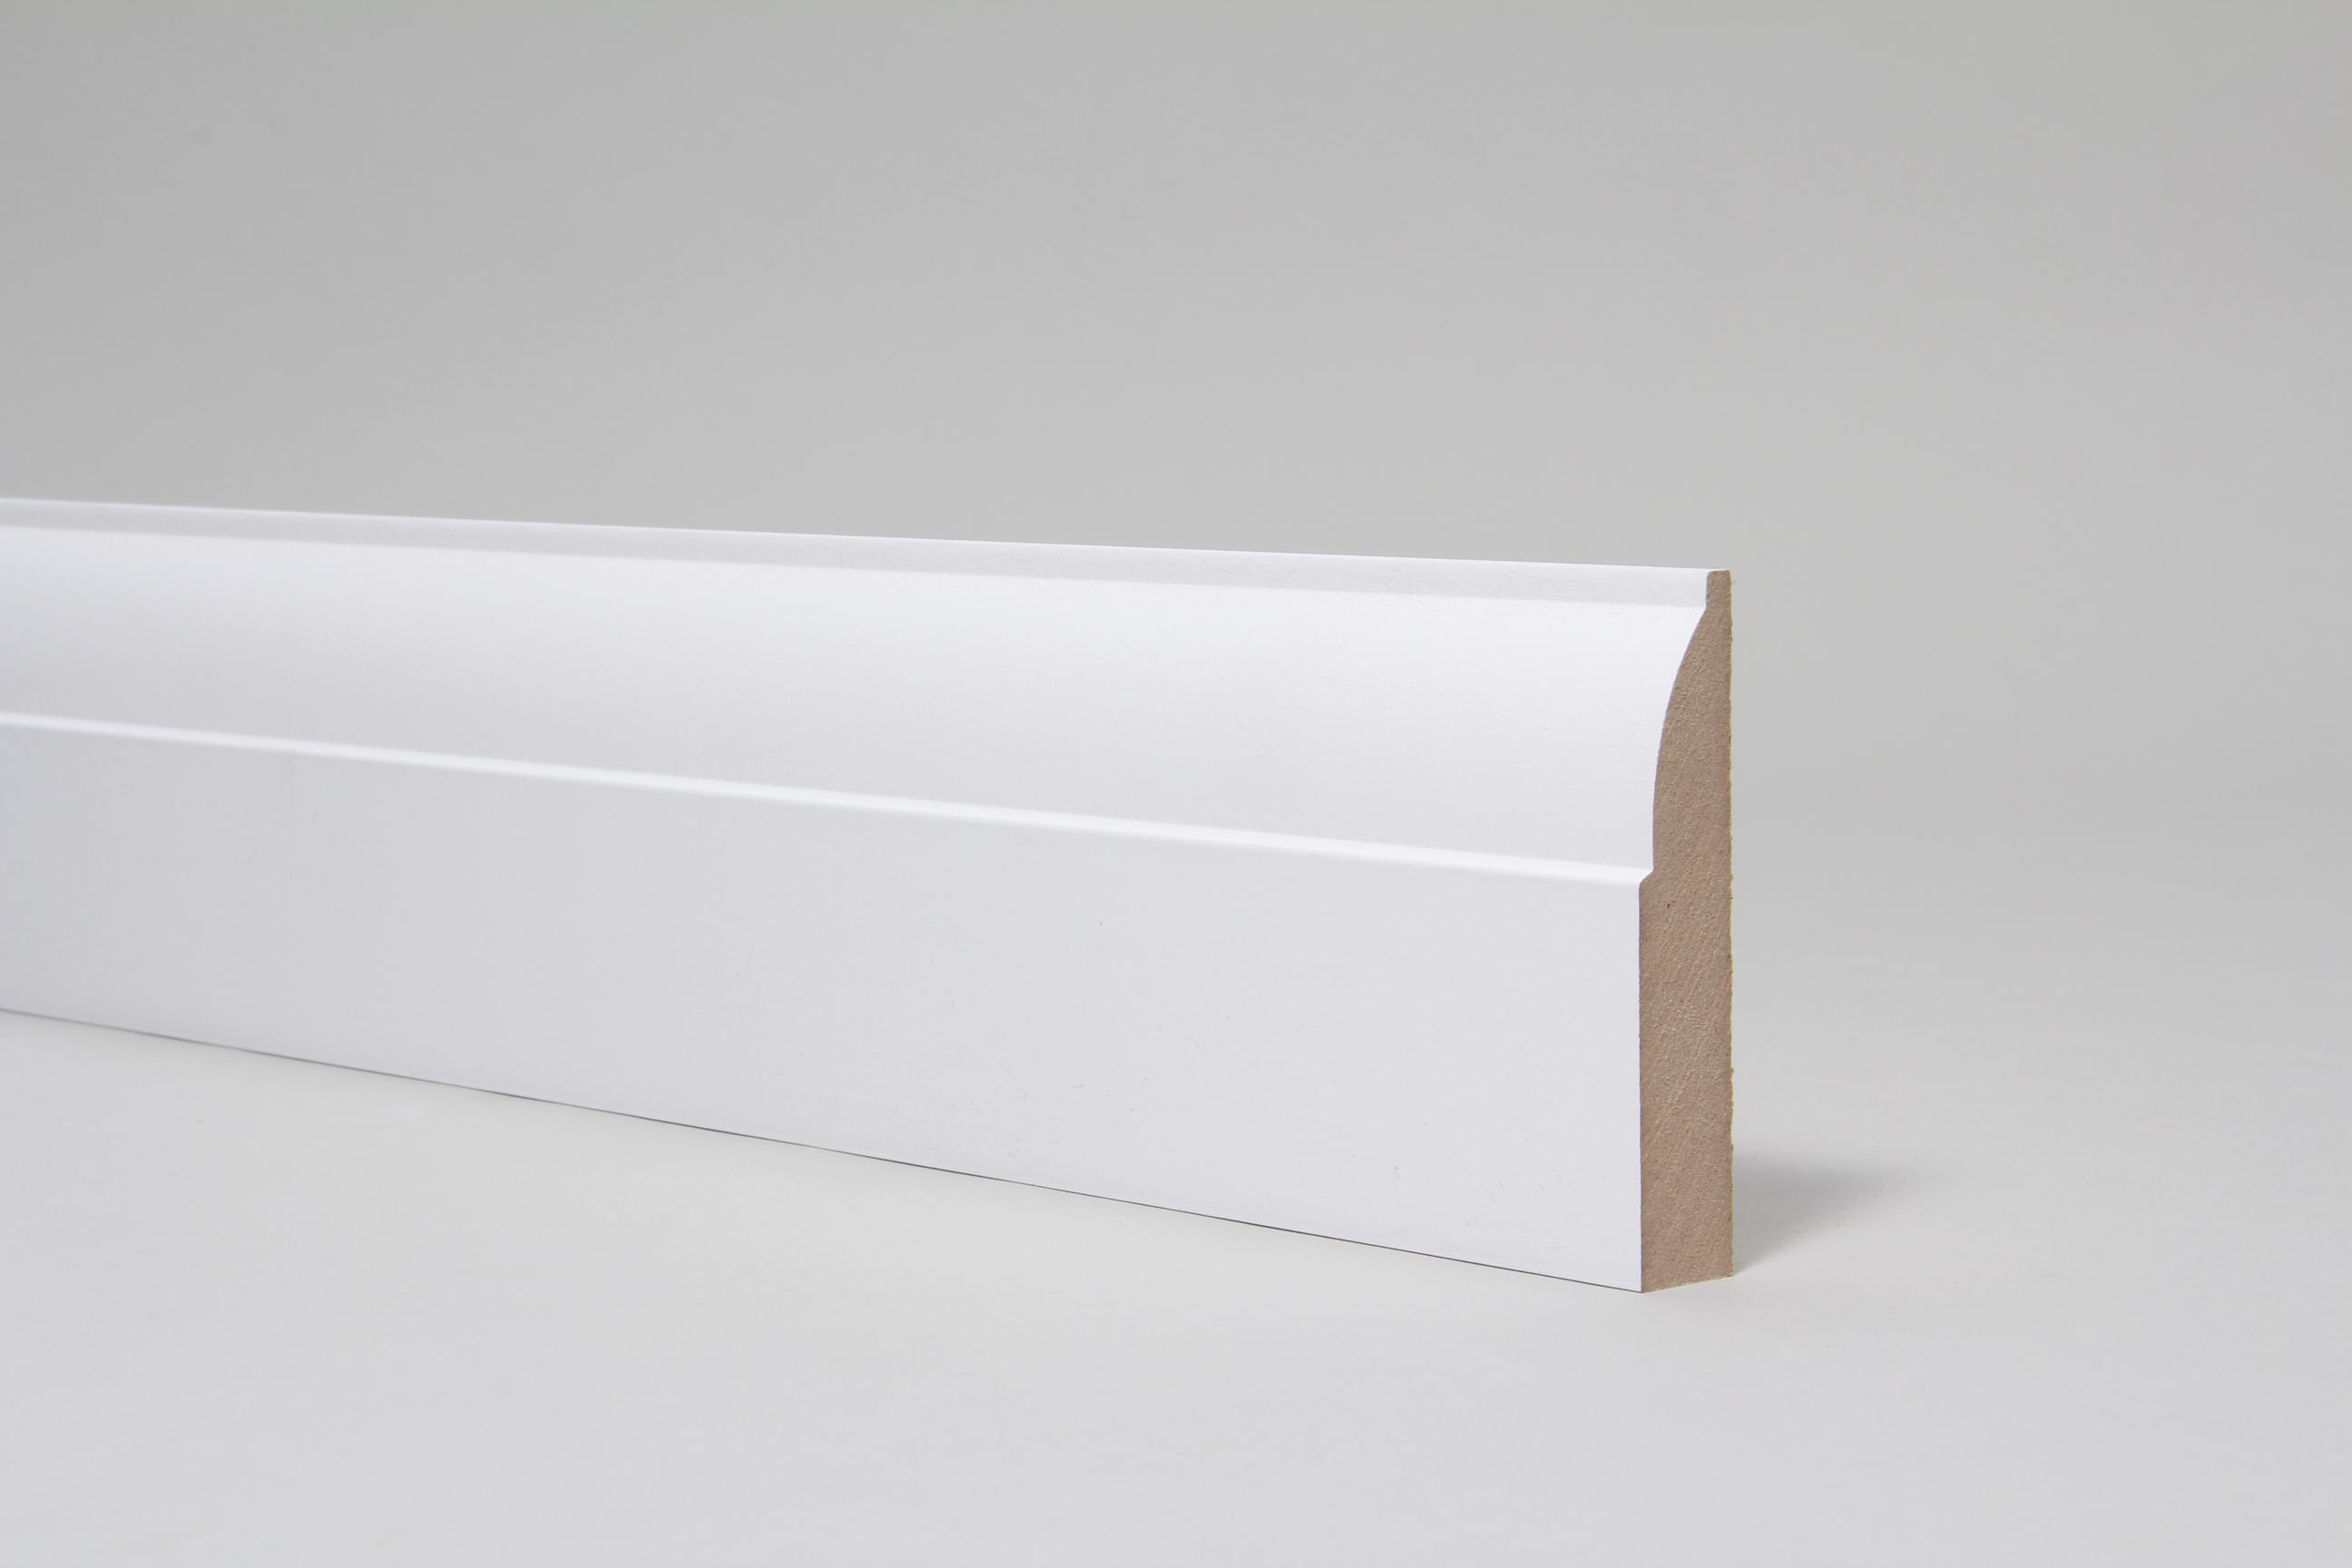 Ovolo 18mm x 94mm x 4.4 Mtr Primed